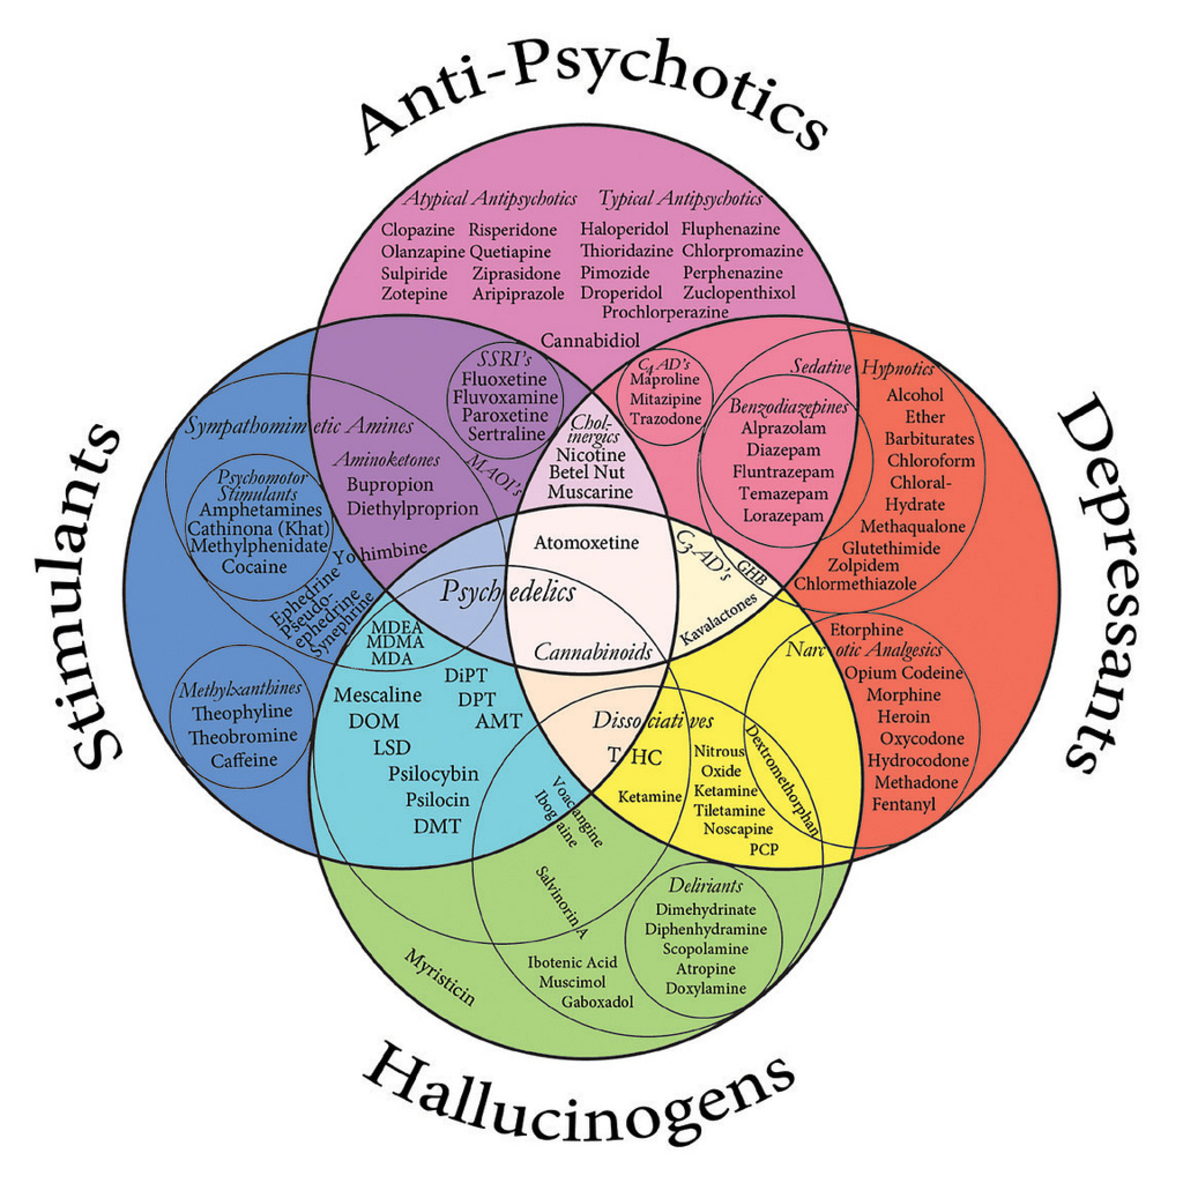 an introduction to the issue of psychoactive drugs While we all experience altered states of consciousness in the form of sleep on a regular basis, some people use drugs and other substances that result in altered states of consciousness as well this section will present information relating to the use of various psychoactive drugs and problems associated with such use.